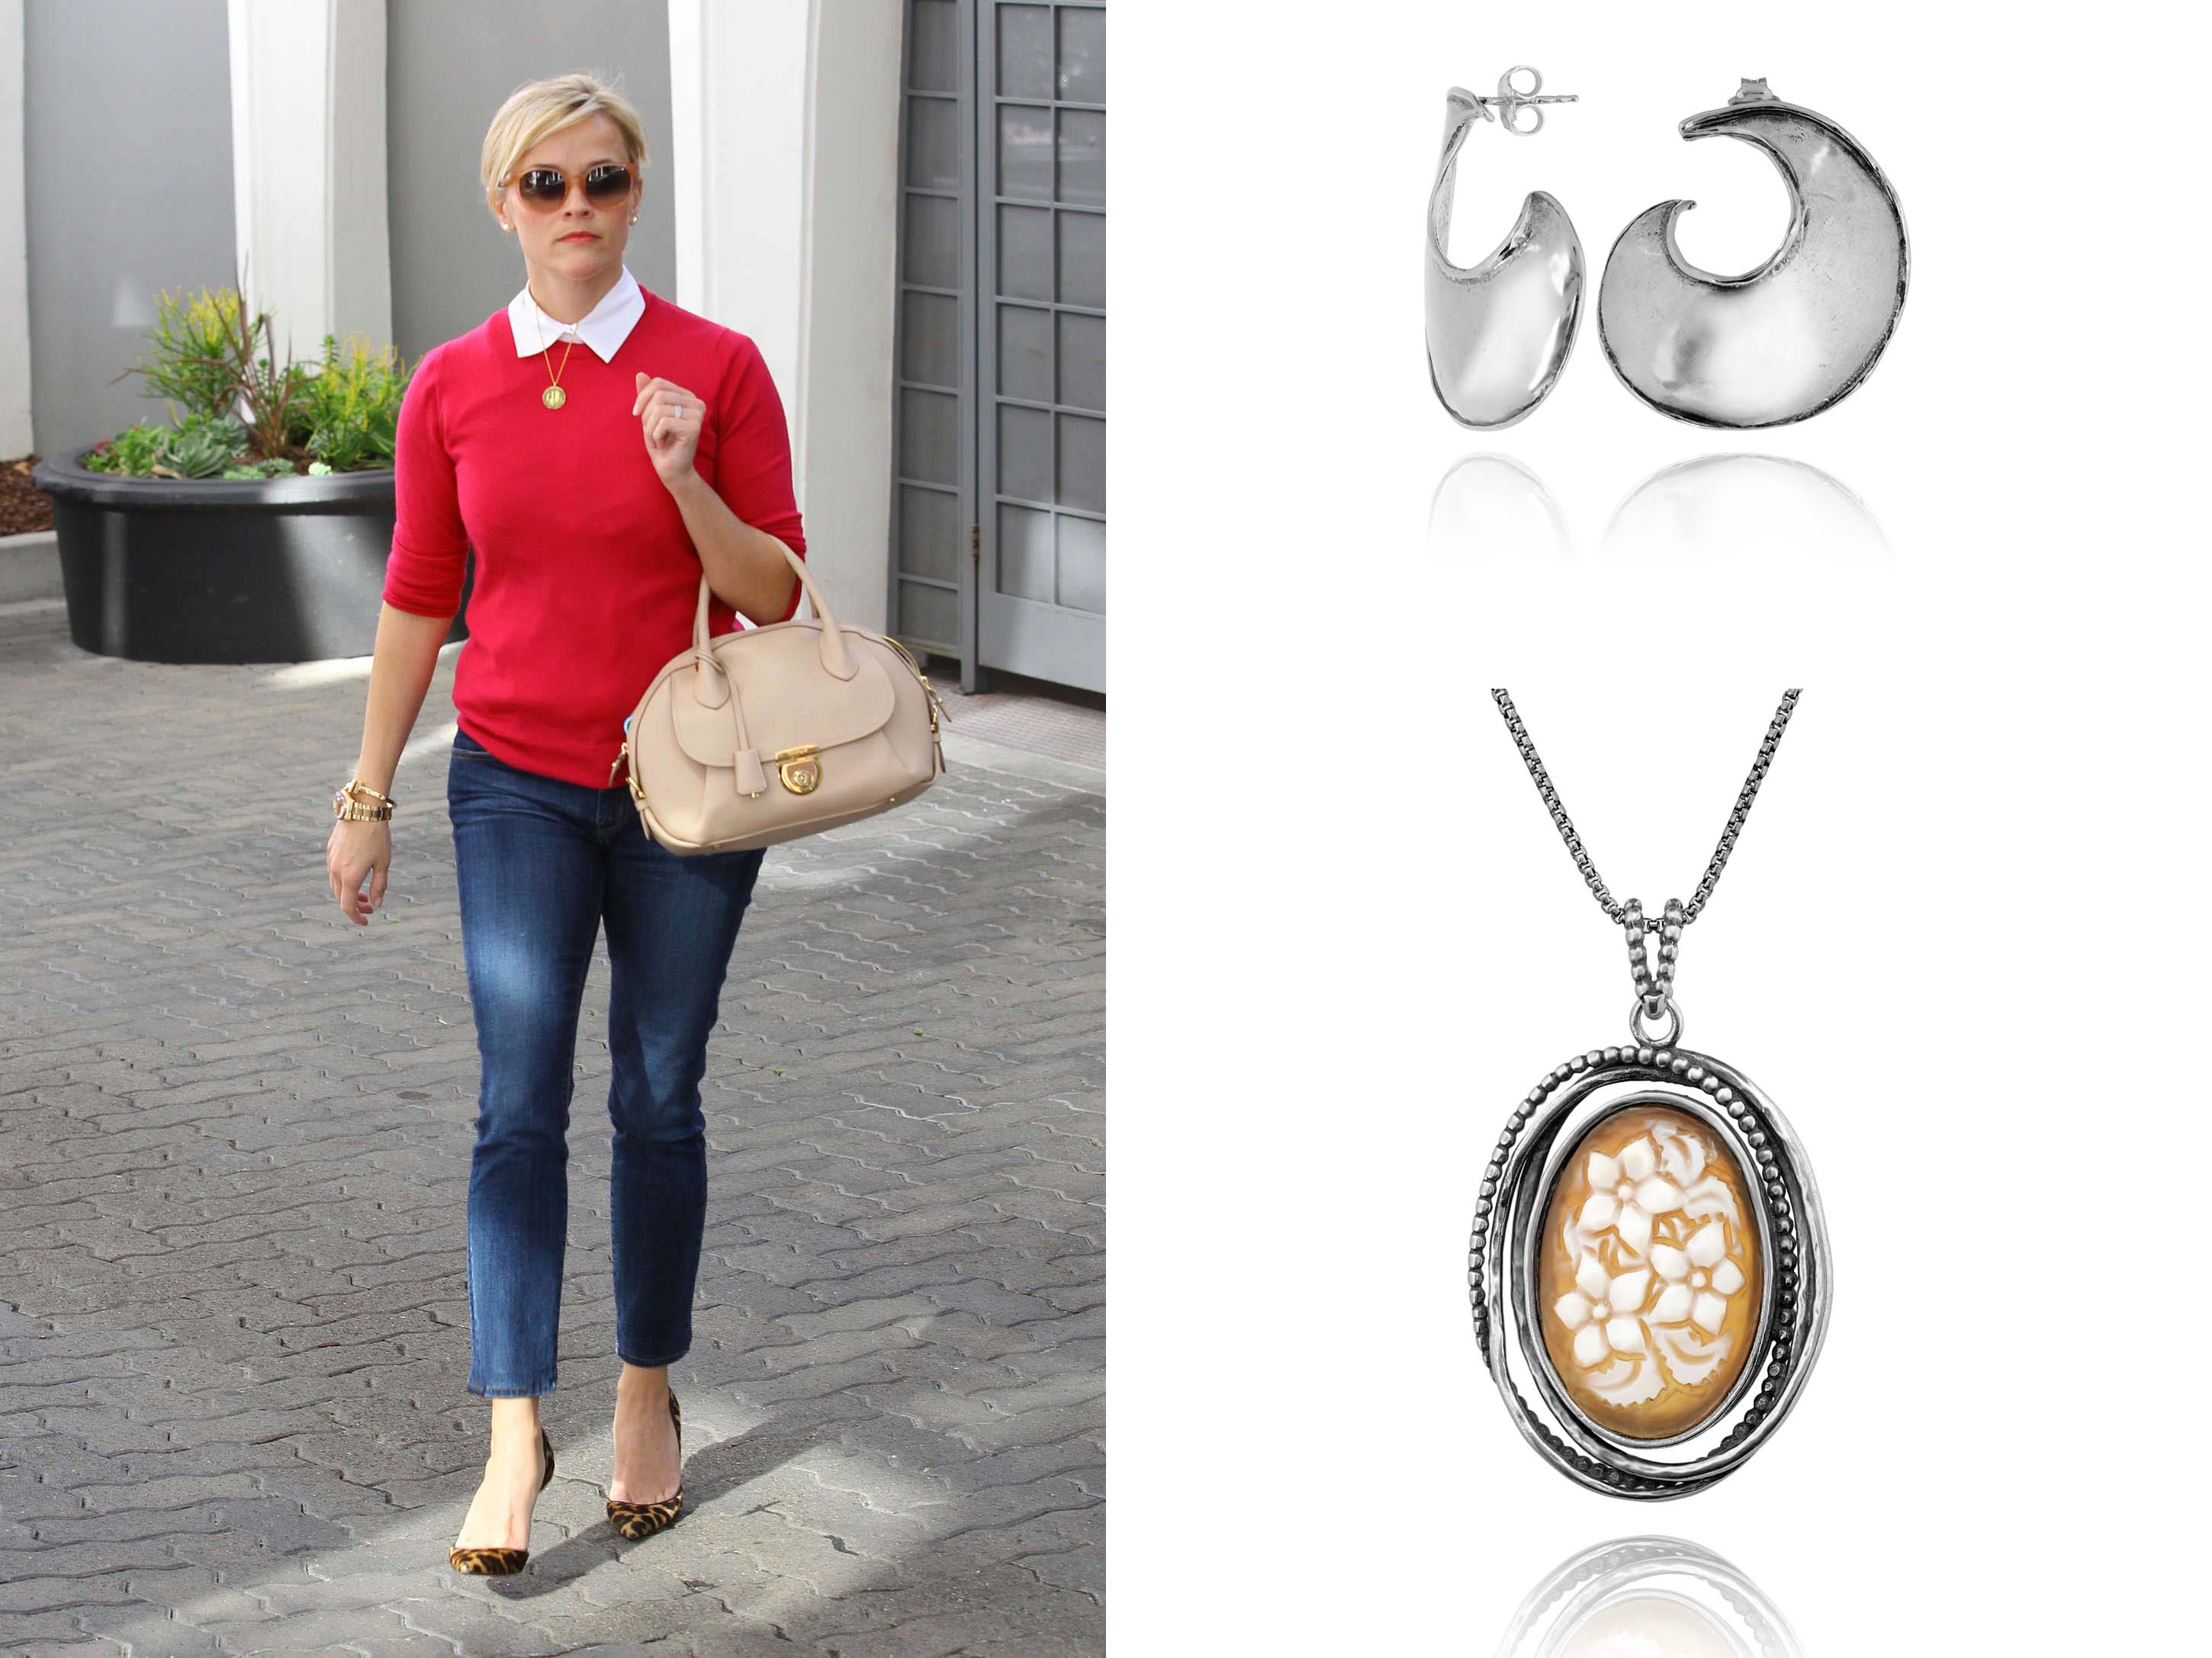 paz creations cameo necklace reese witherspoon